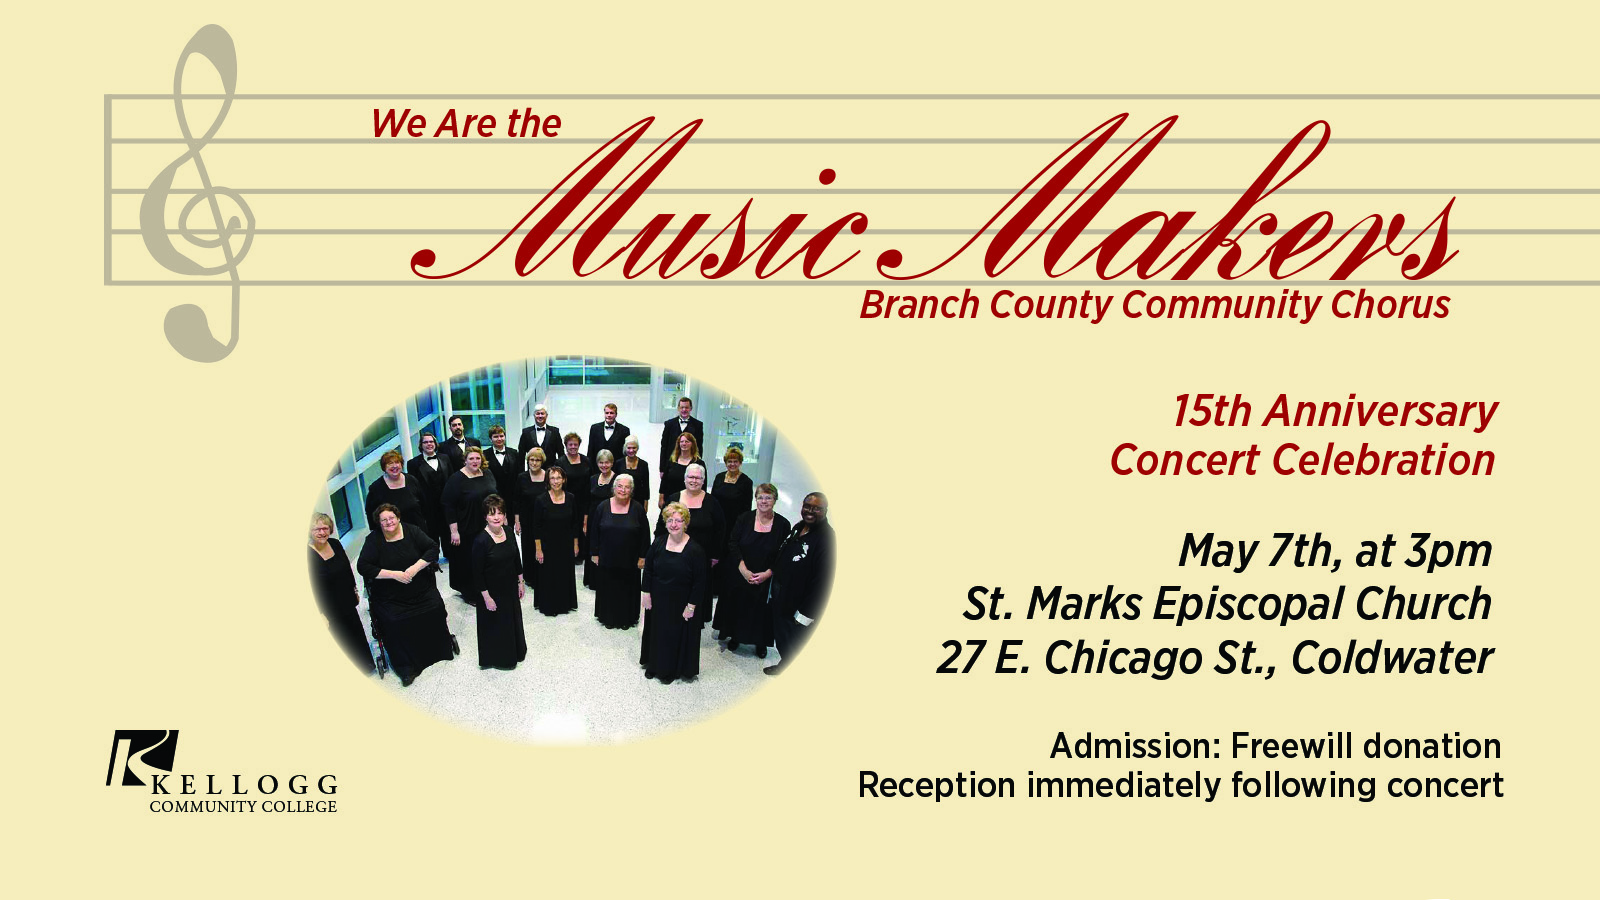 A promotional text slide highlighting the Branch County Community Chorus's May 7 concert in Coldwater.